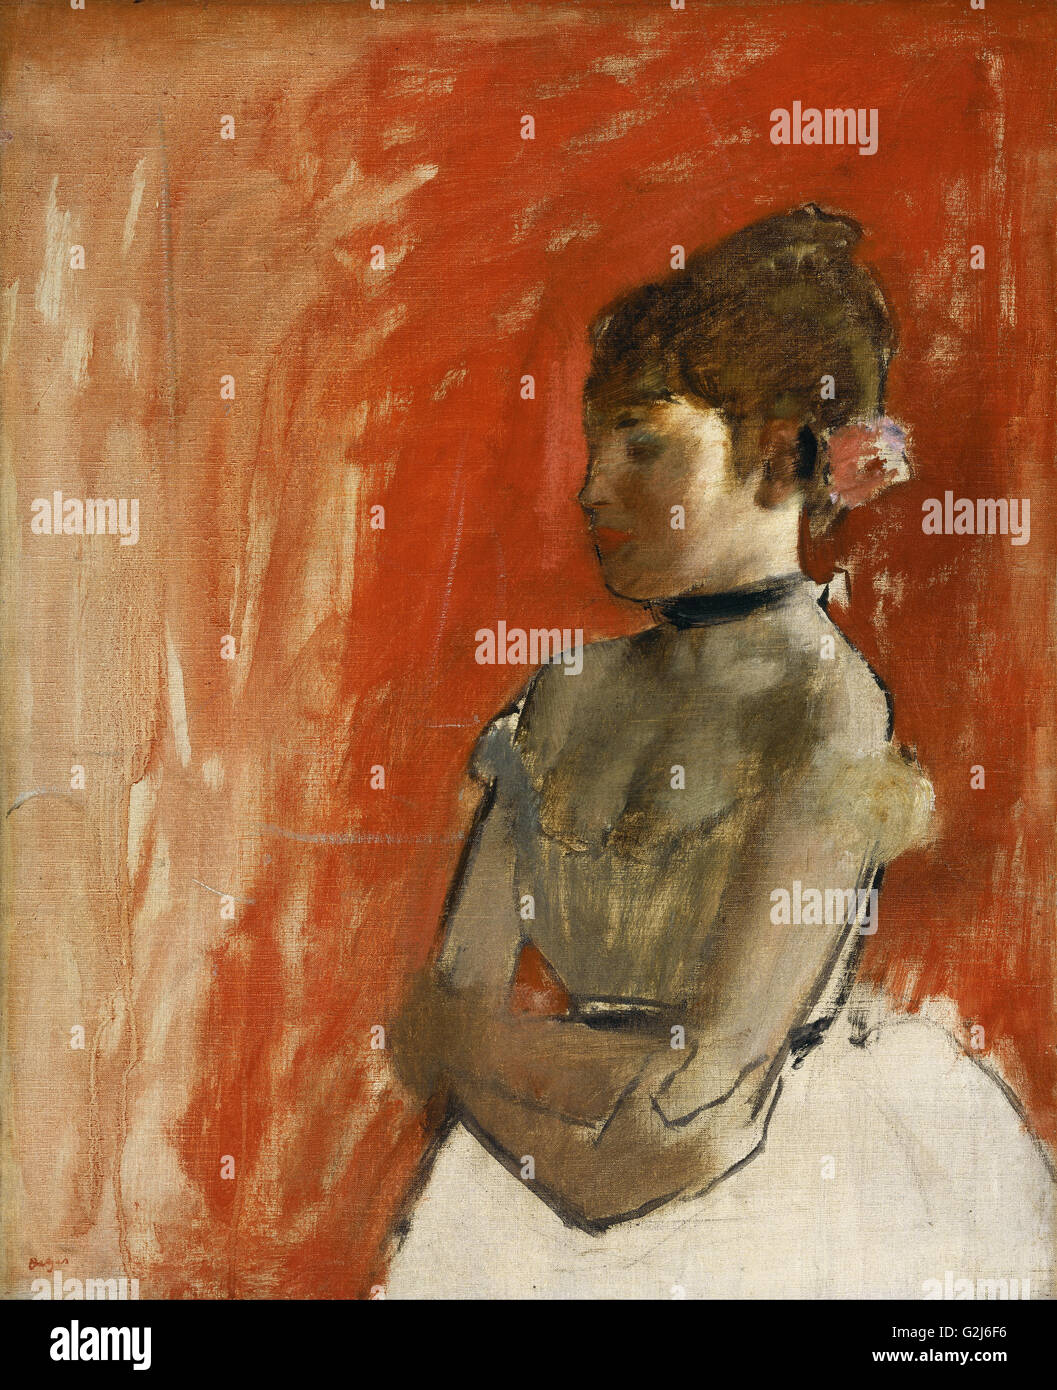 Edgar Degas - Ballet Dancer with Arms Crossed - Stock Image